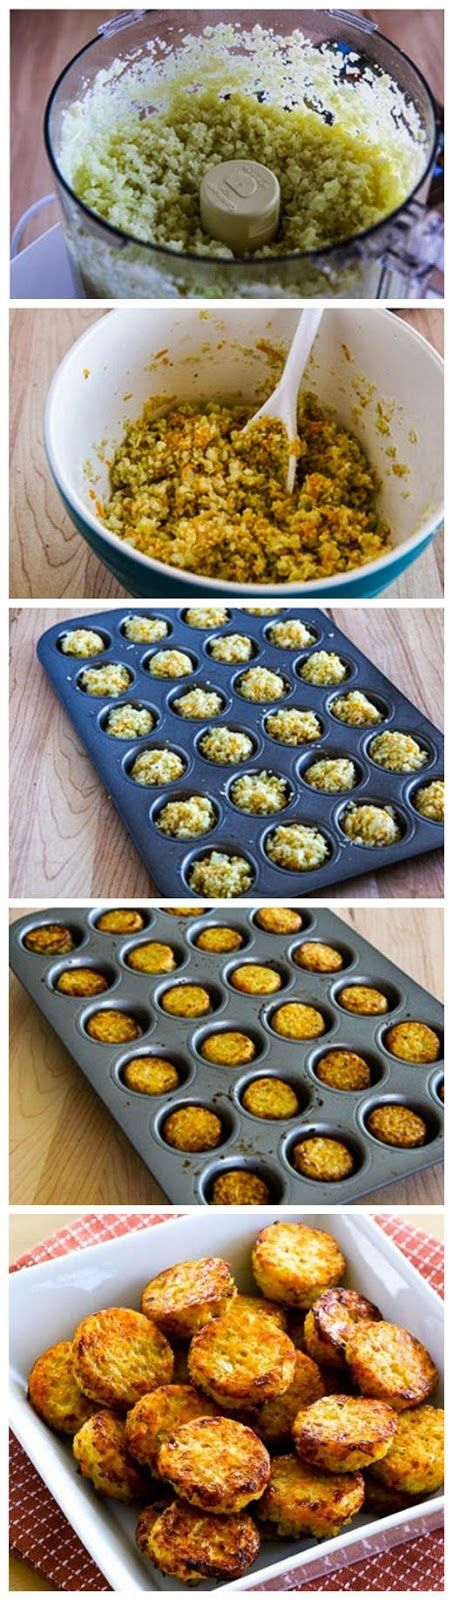 Bite-sized and delicious, these Cheesy Baked Cauliflower Tots are great for a snack or a low-carb side dish!    Ingredients    1/2 large hea...